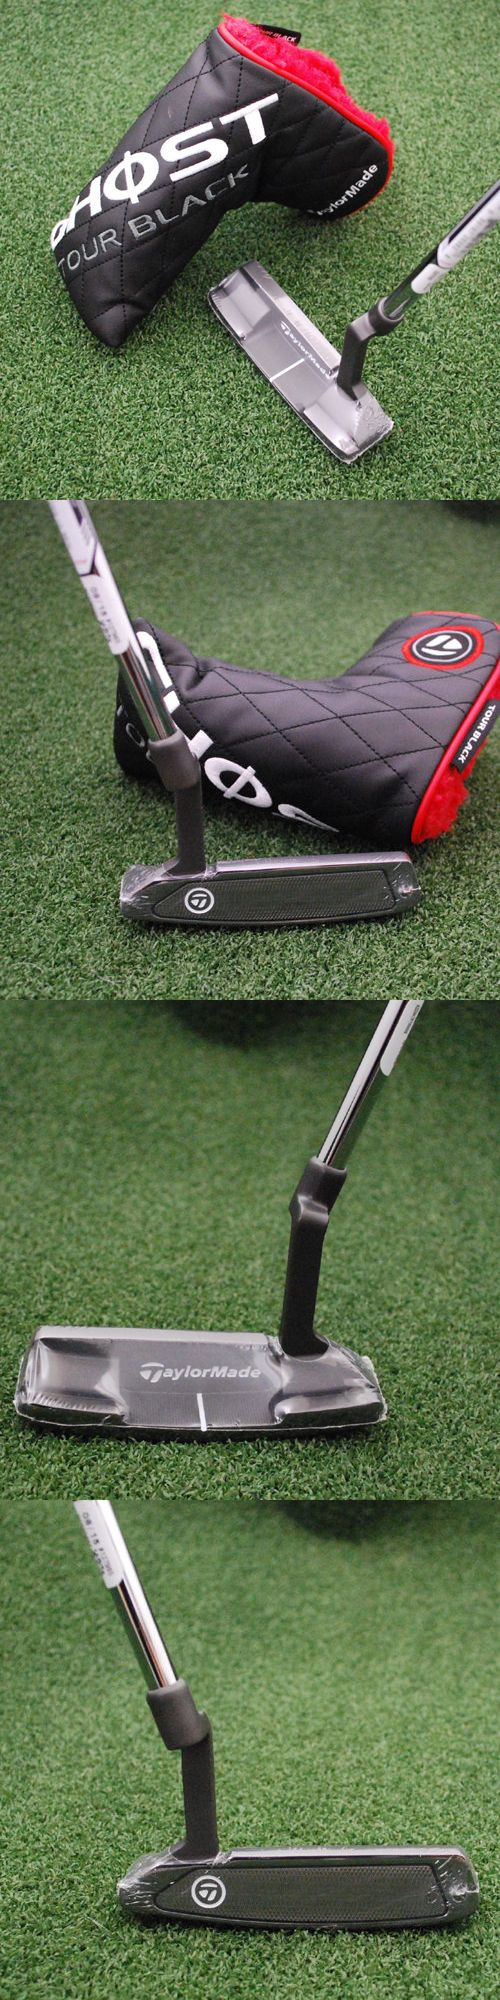 Golf Clubs 115280: Taylormade Golf Left Hand Ghost Tour Black Daytona Putter 35 Superstroke - New -> BUY IT NOW ONLY: $99.95 on eBay!